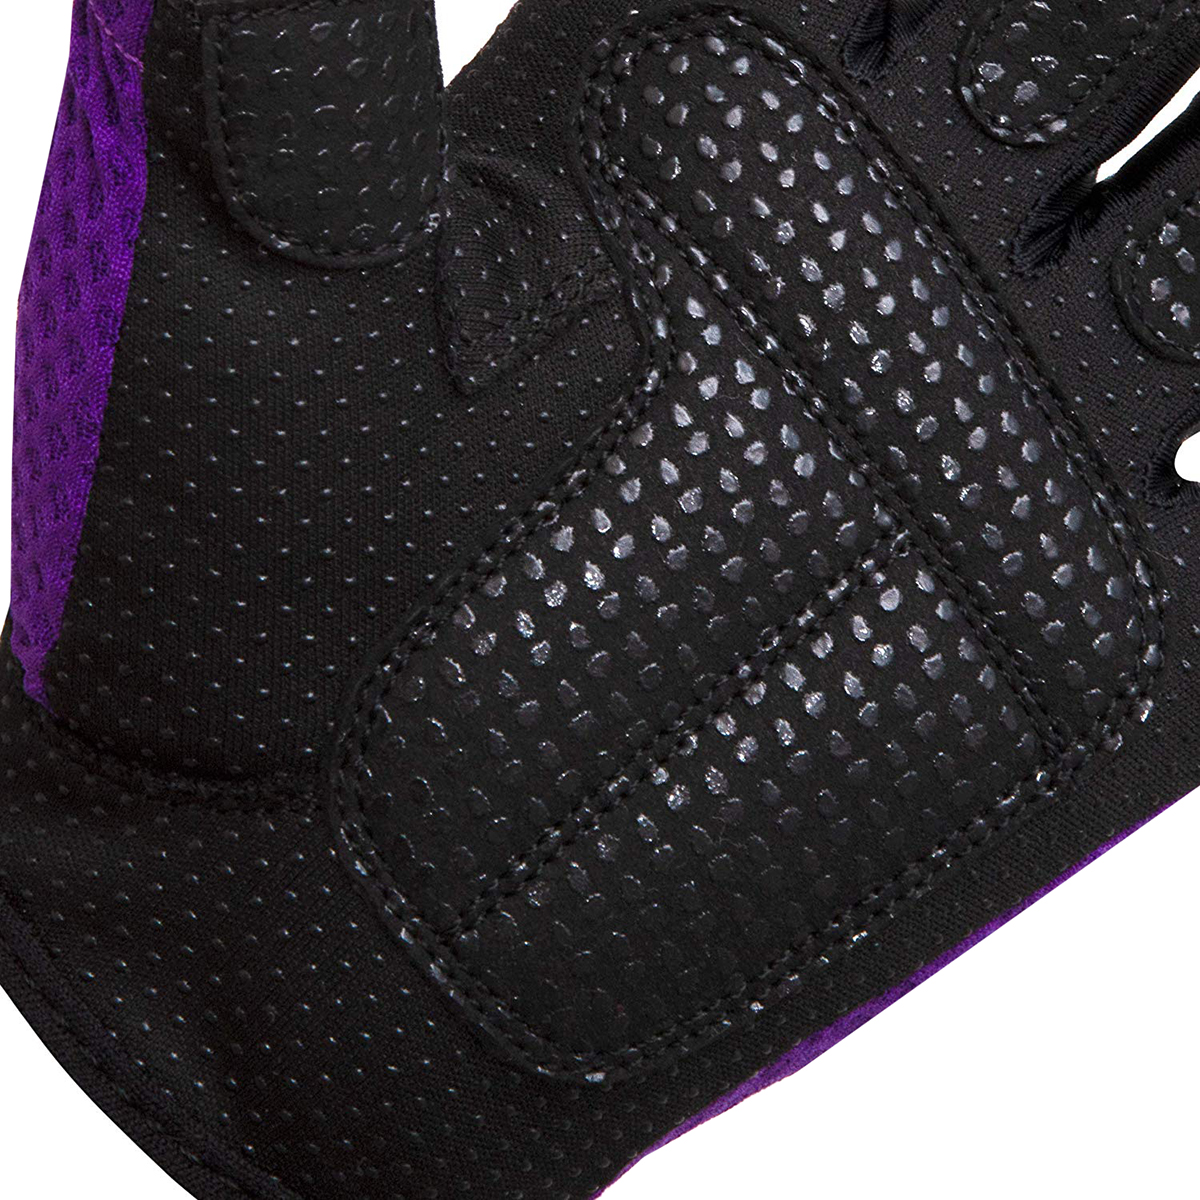 Mesh Weight Lifting Gloves: Contraband Sports 5307 Pink Label Diamond Mesh Weight